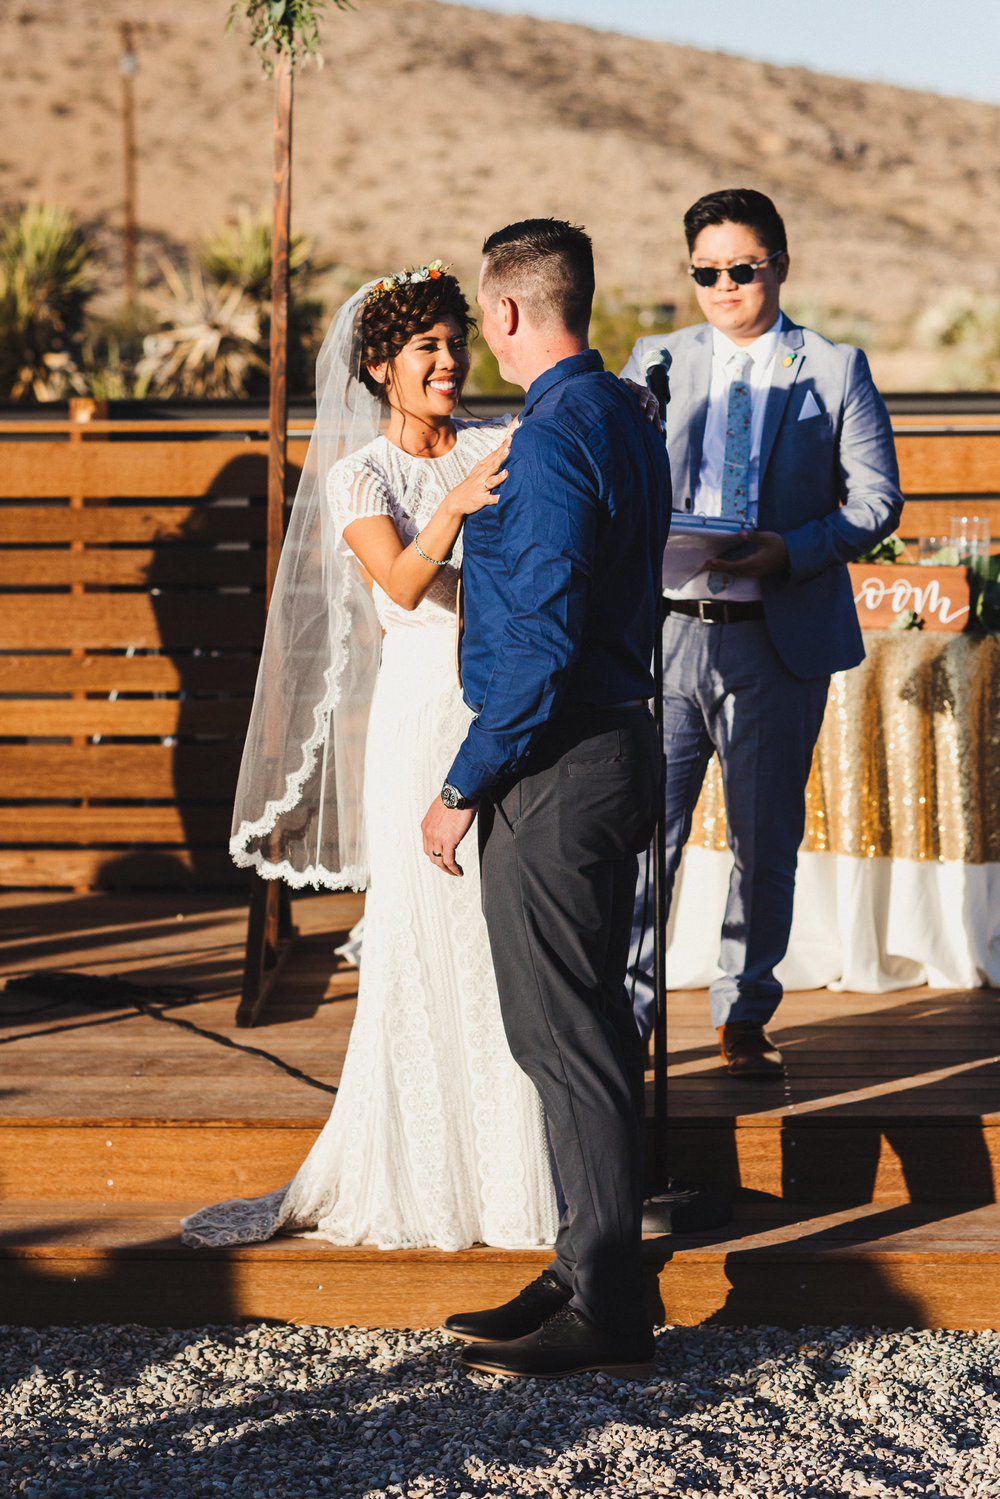 sJ + N - Joshua Tree, CA - 06 Ceremony-27.jpg